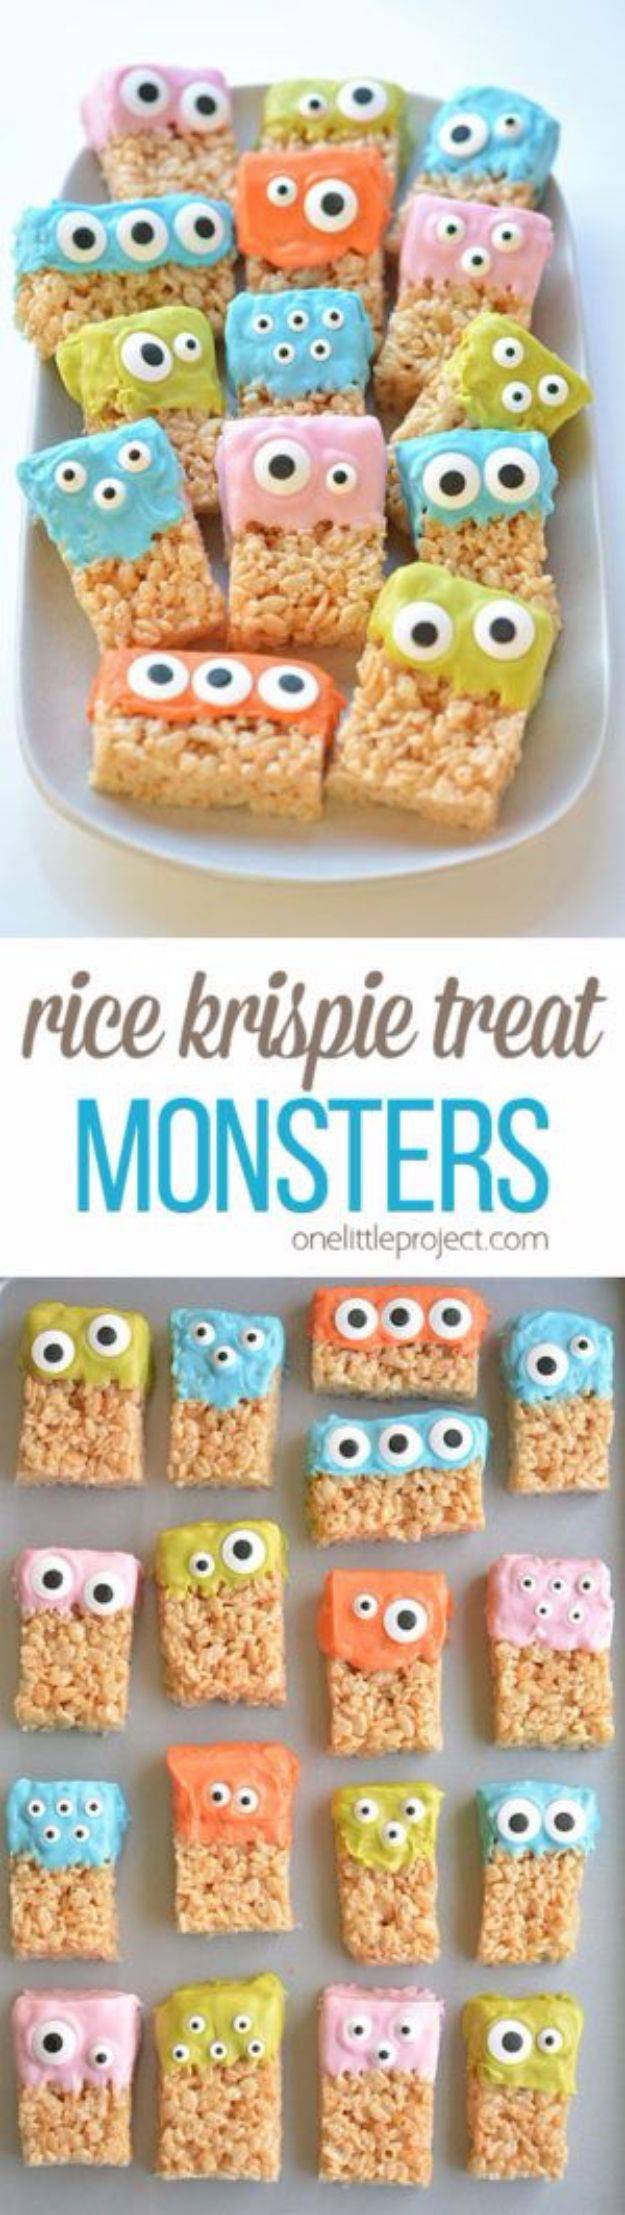 Cool Halloween Dessert Recipe - Rice Krispie Treat Monsters - Healthy Ideas for Kids for School, Teens and Adults - Easy and Quick Recipes and Idea for Dips, Chips, Spooky Cookies and Treats - Appetizers and Finger Foods Made With Vegetables, No Candy, Cheap Food, Scary DIY Party Foods With Step by Step Tutorials #halloween #halloweenrecipes #halloweenparty